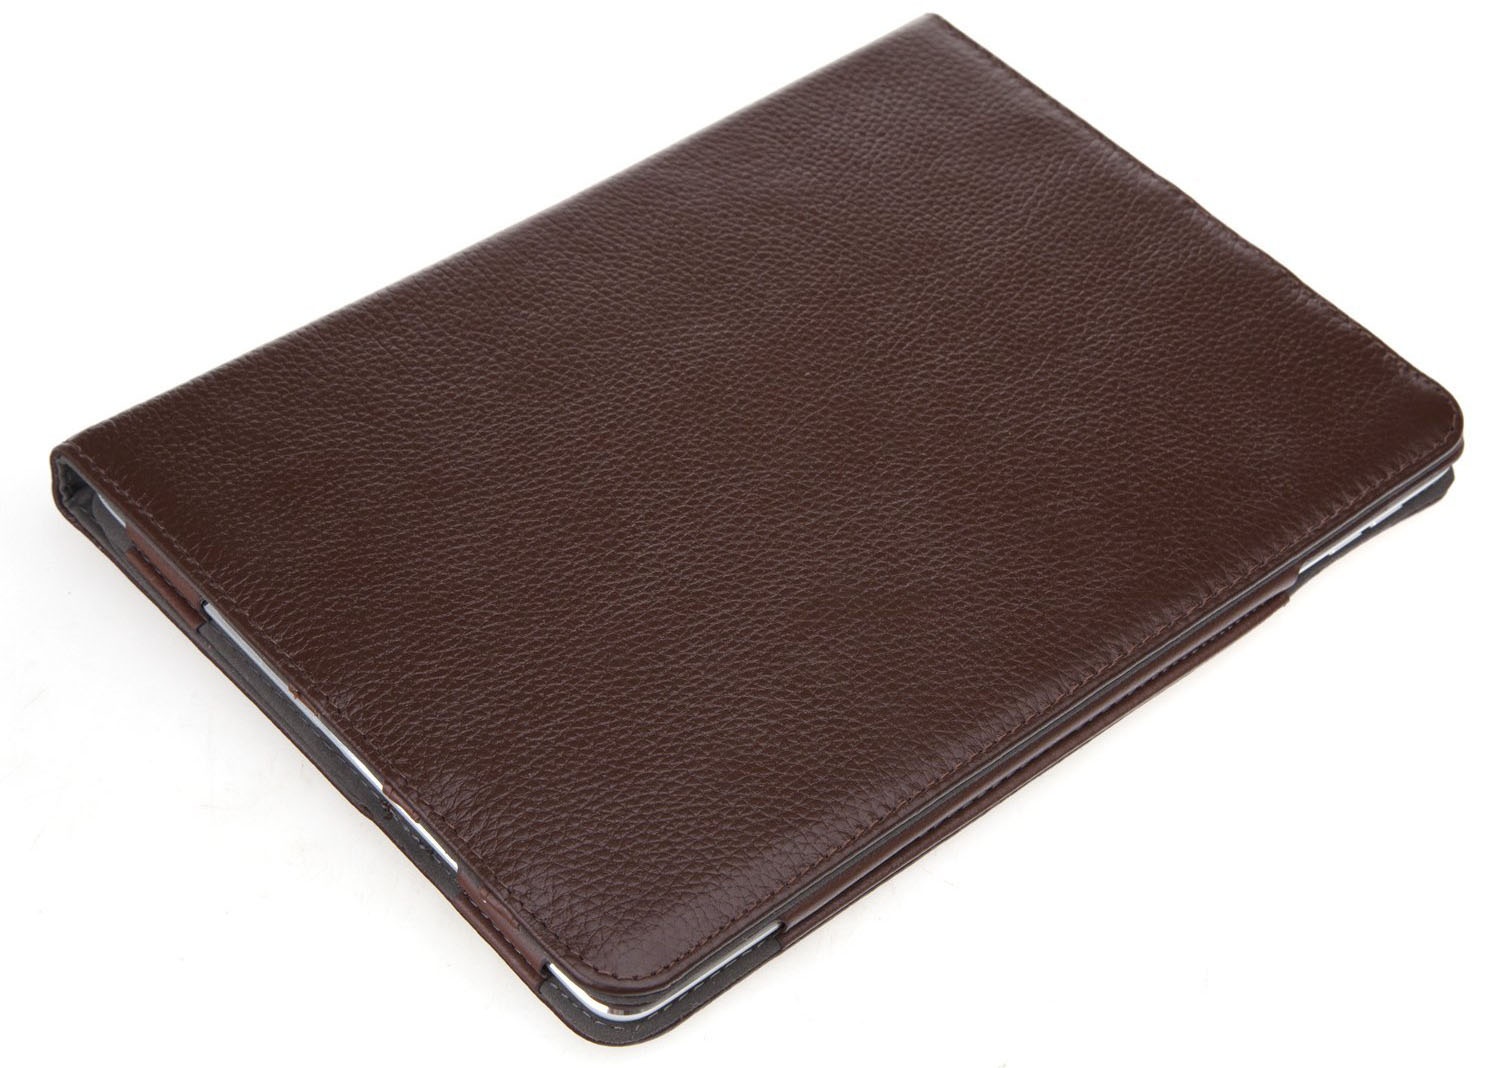 Brown Genuine Leather iPad Air 2 Case